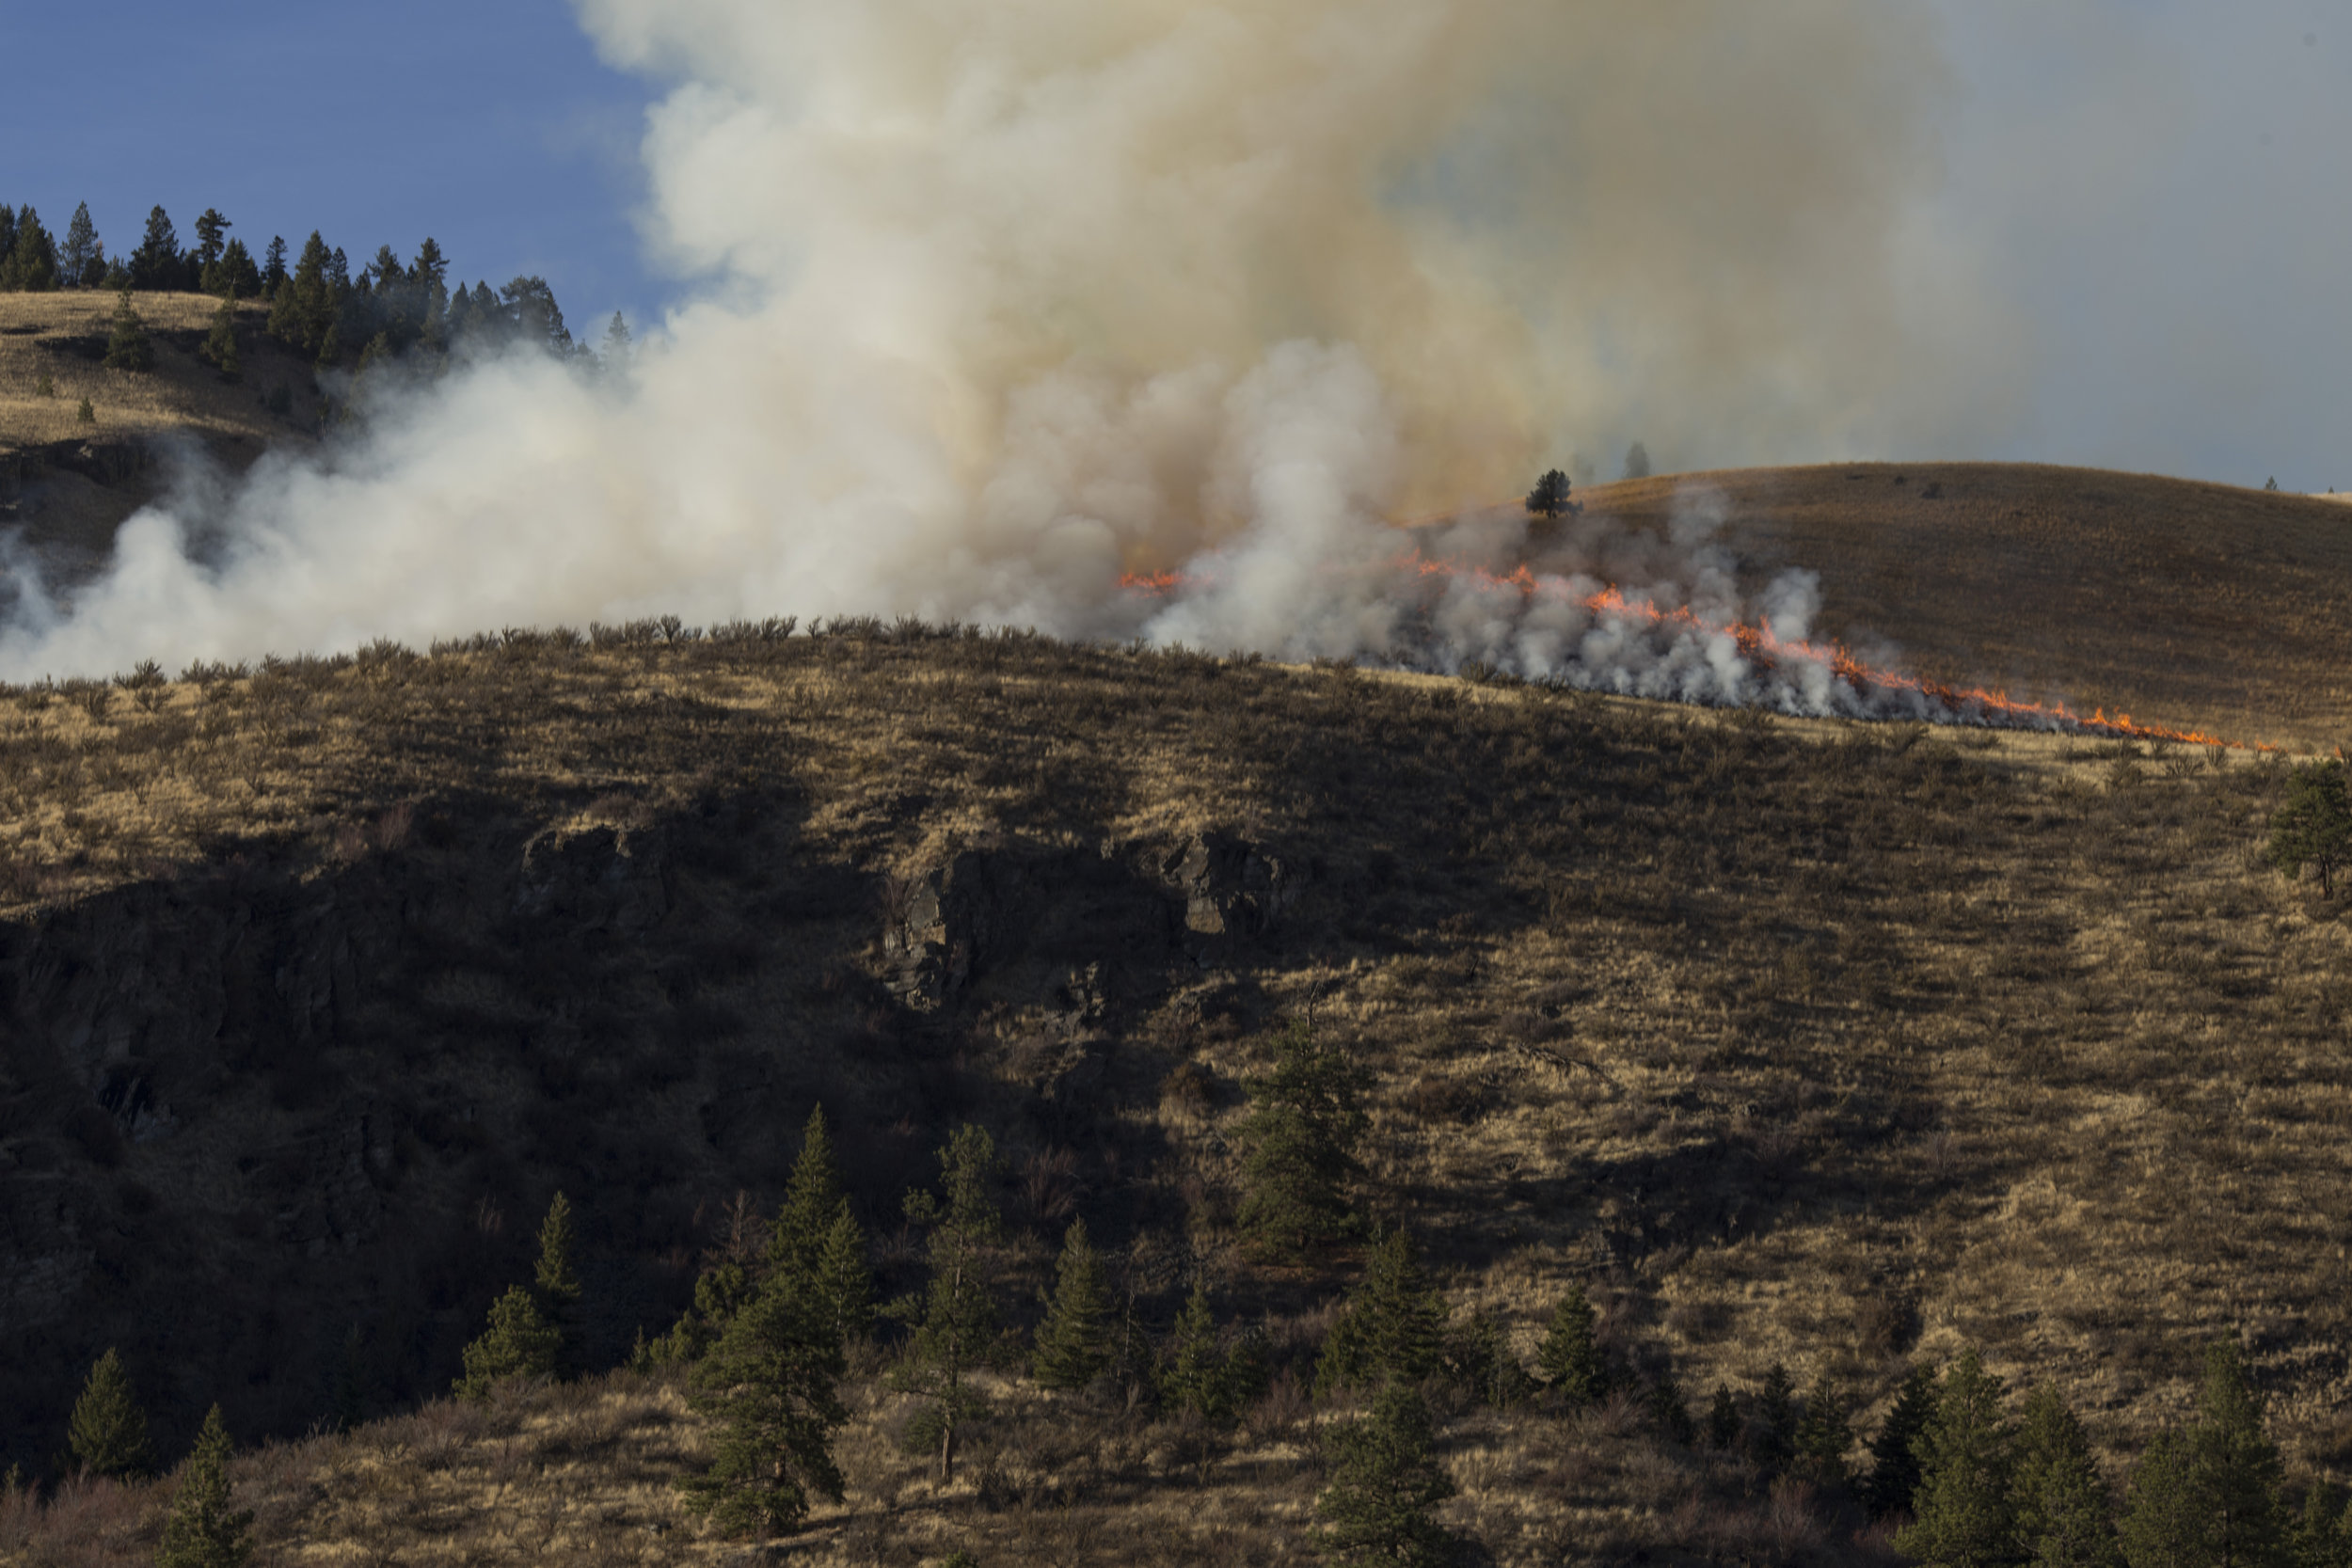 The prescribed burn prepared by the Confederated Salish and Kootenai Tribes Division of Fire skims the ridge line just outside of Elmo, Montana., on Tuesday, October 24, 2017.